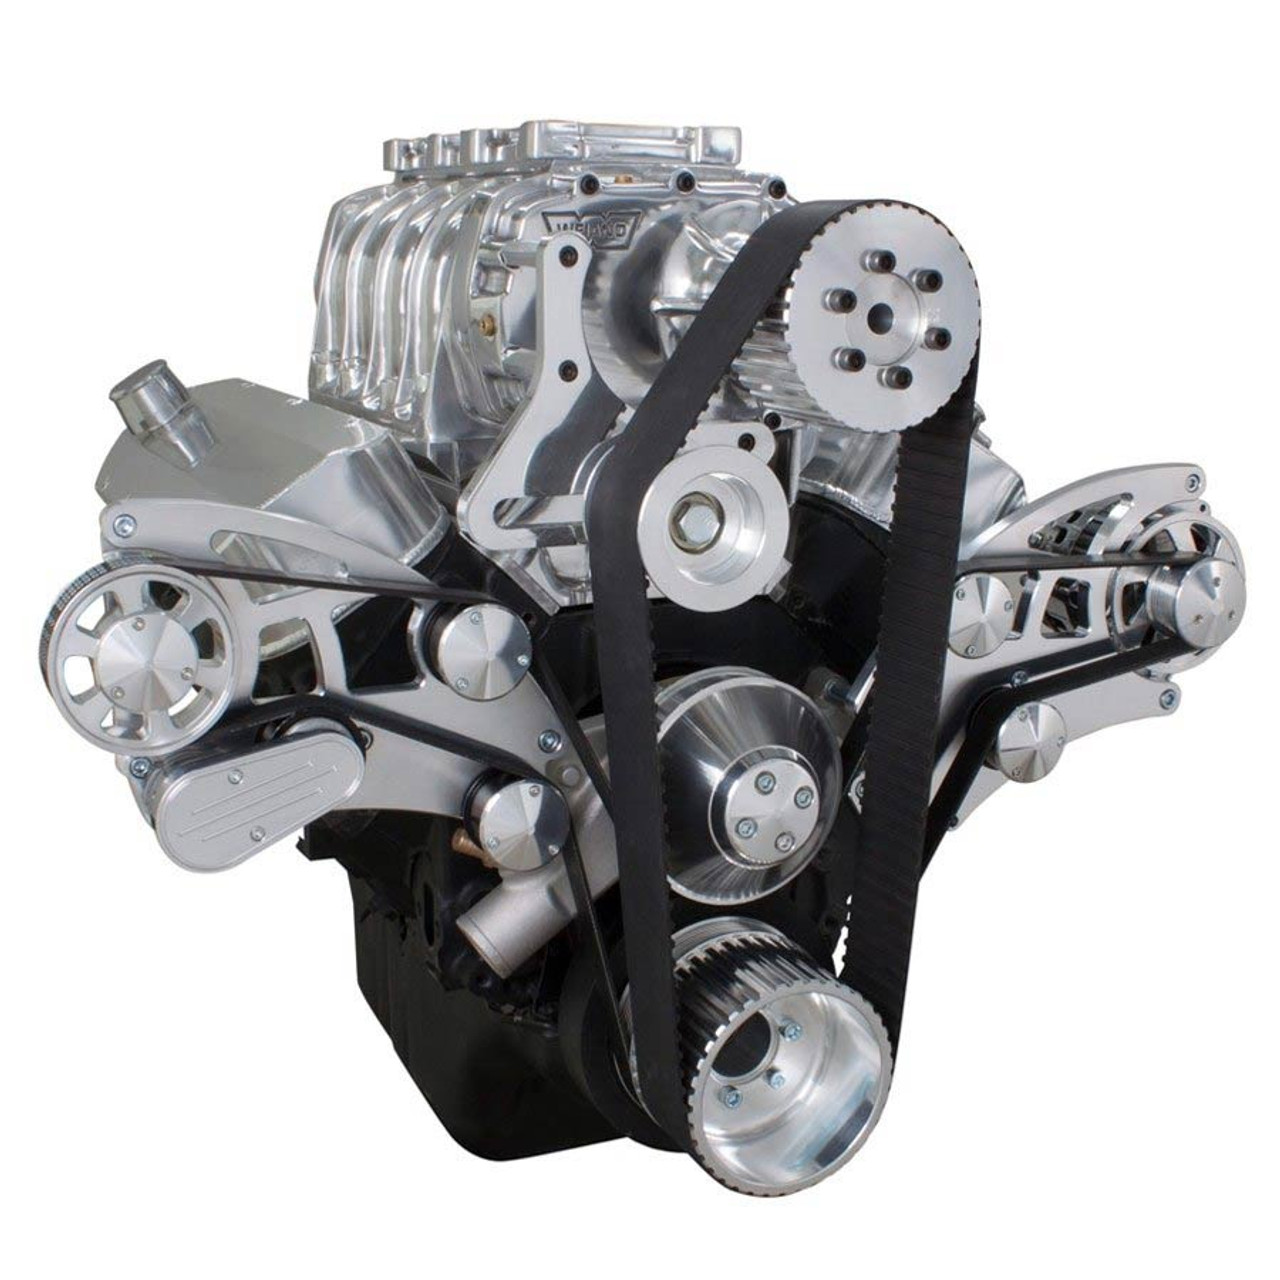 Serpentine System for 396, 427 & 454 Supercharger - Alternator Only with  Electric Water Pump - All Inclusive